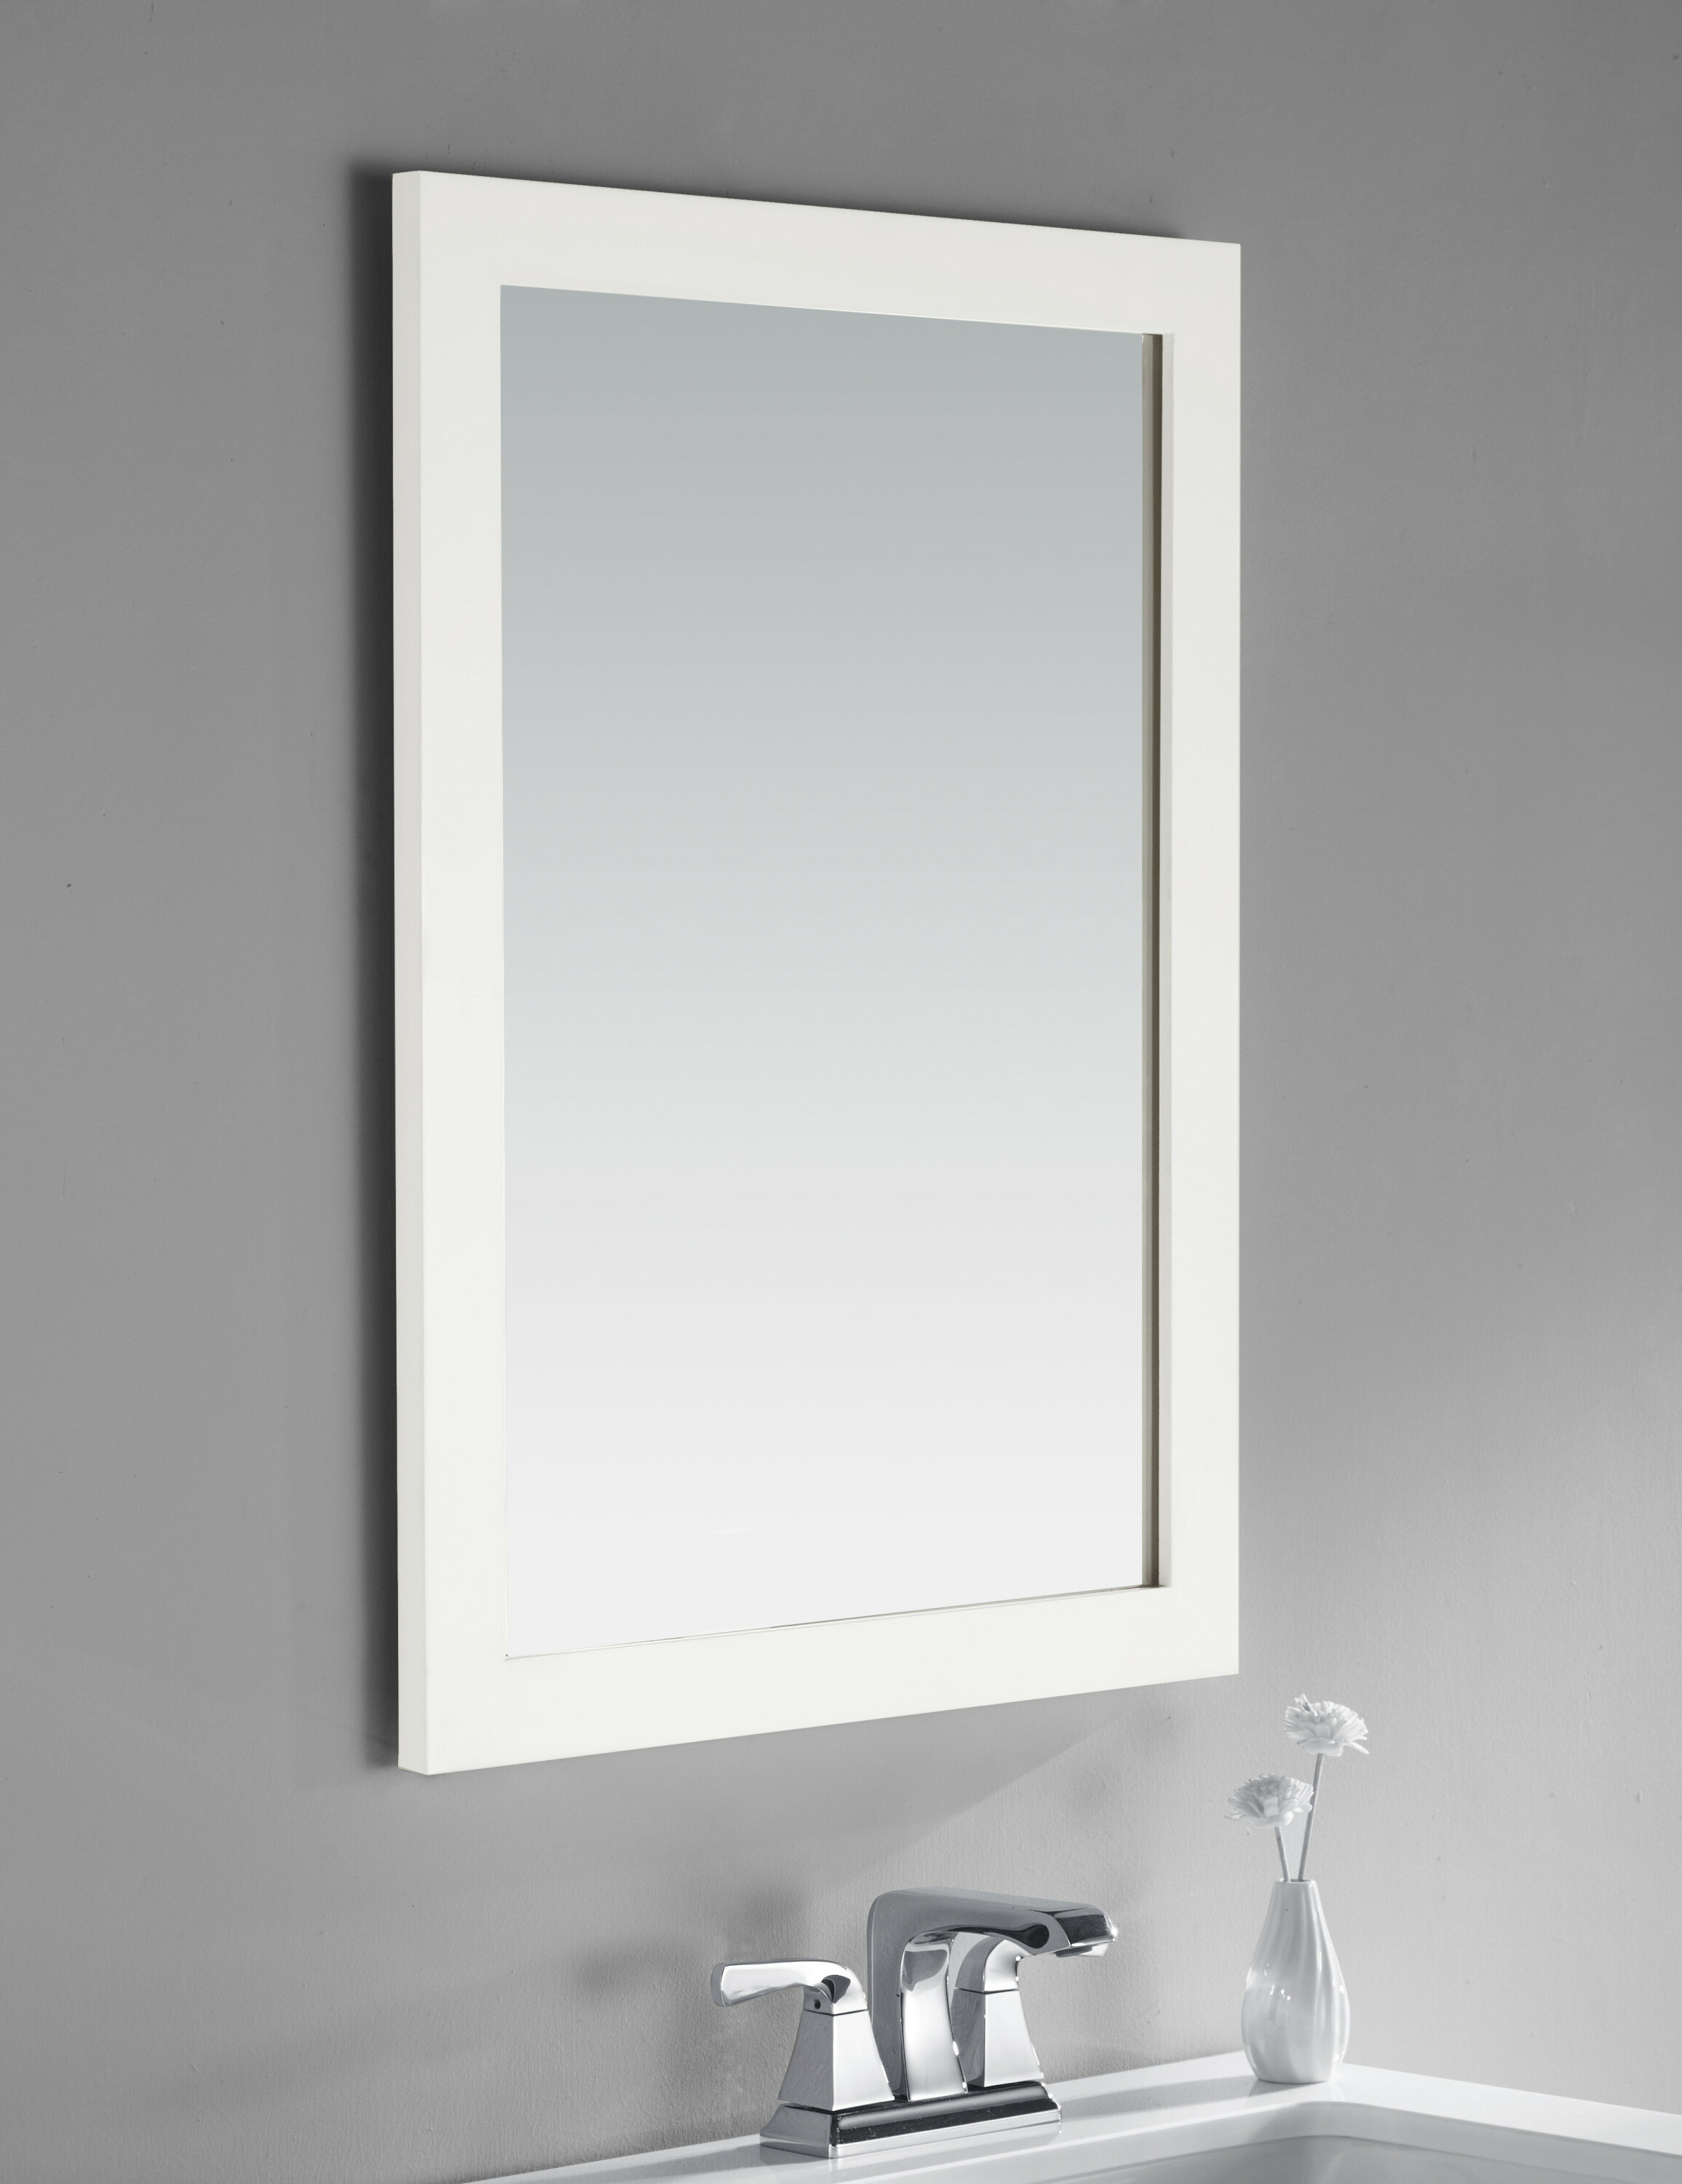 Simpli Home Cape Cod Bathroom/Vanity Mirror & Reviews | Wayfair